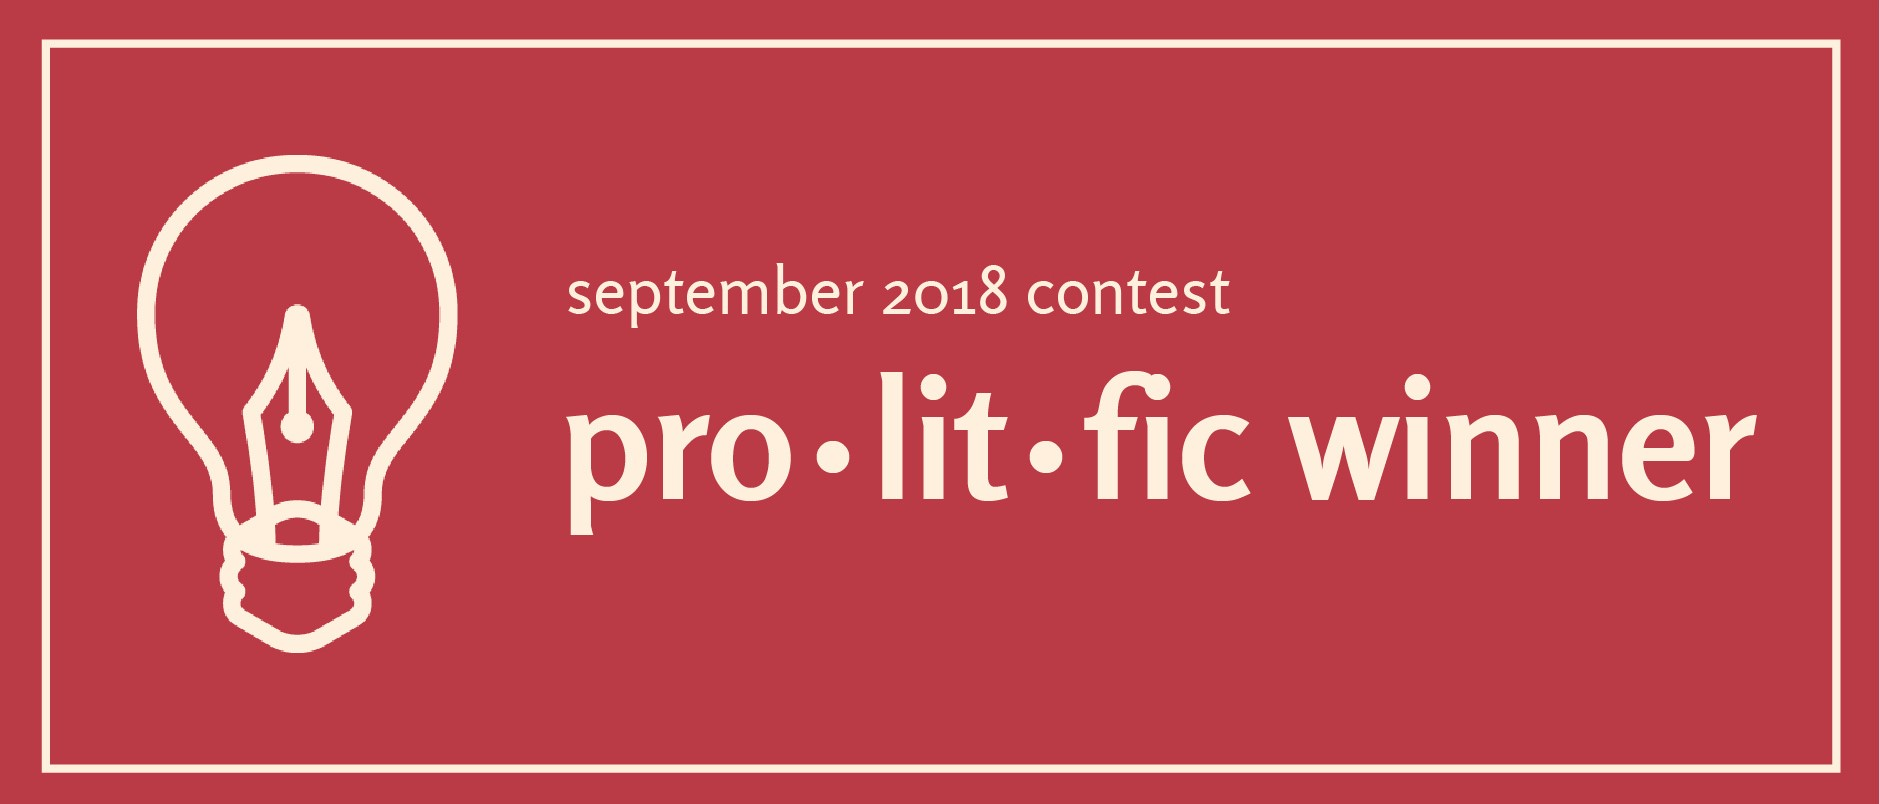 I won a small potatoes prize in 2018! Read at  Prolitfic .